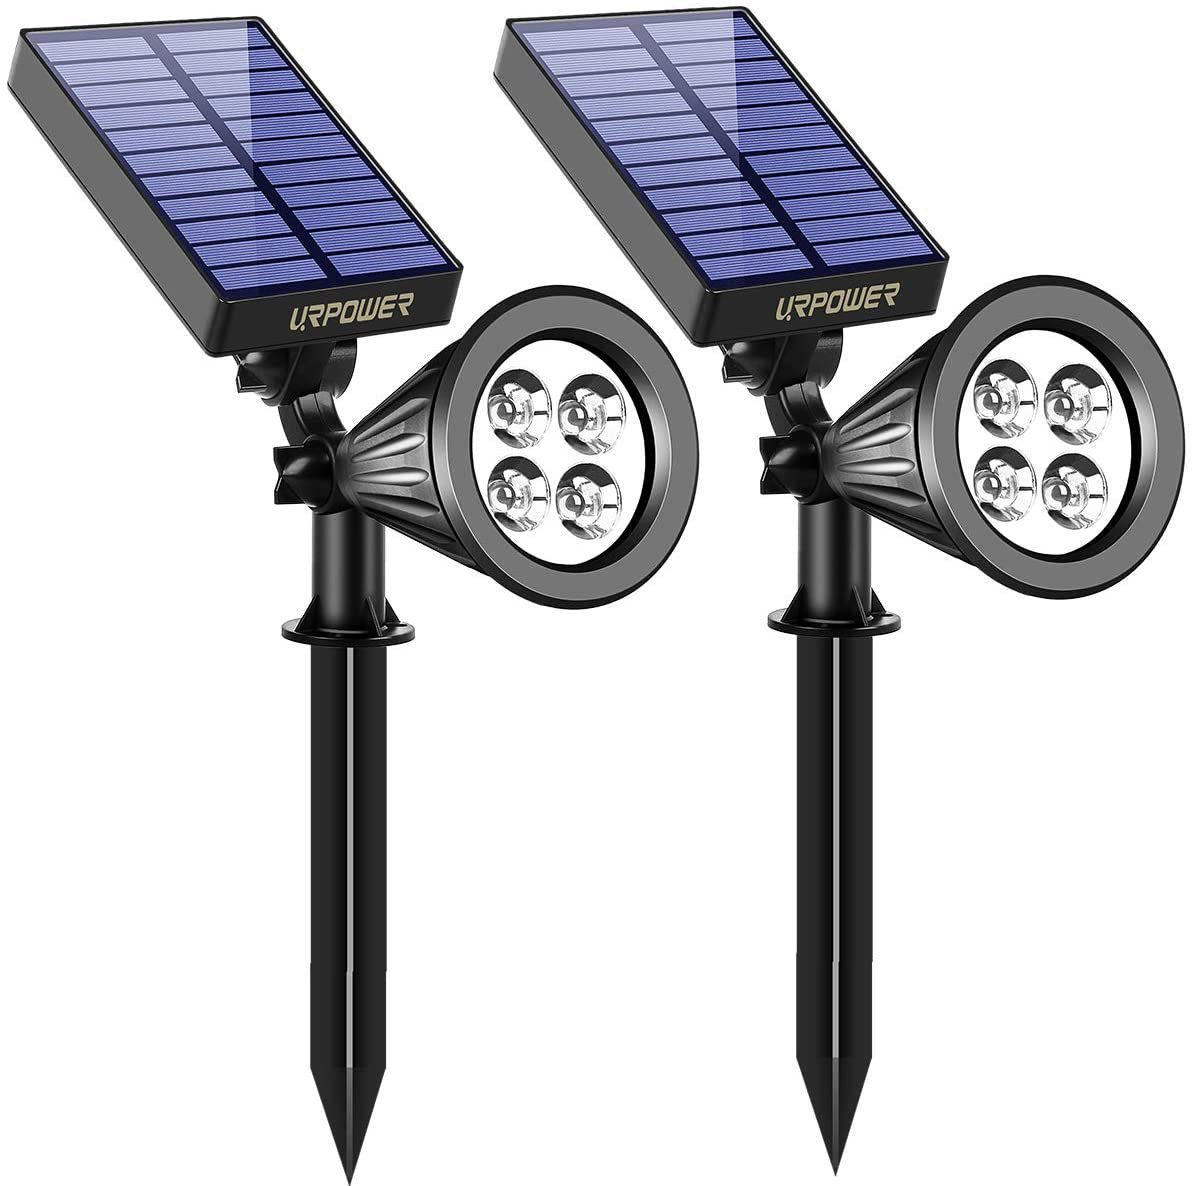 URPOWER 2-in-1 Solar Lights with LED